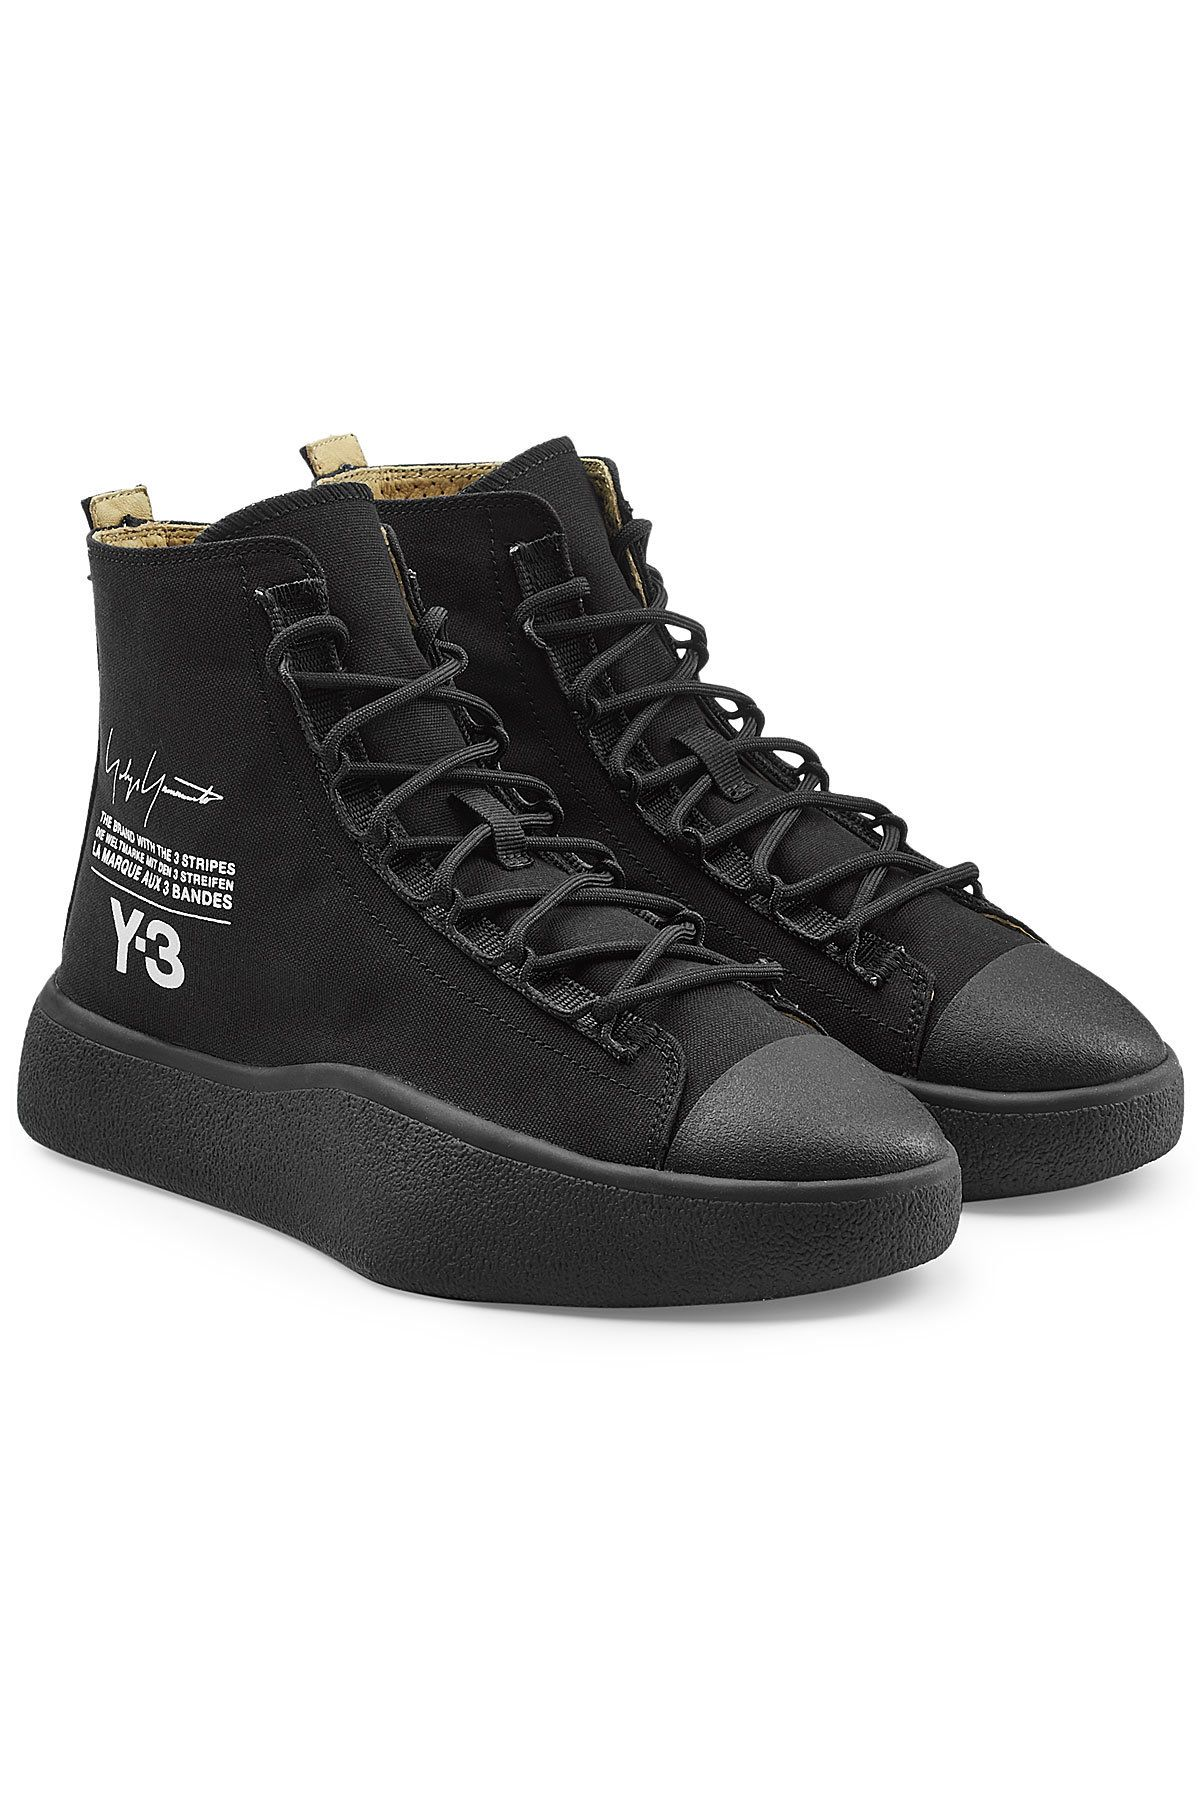 b73621a70 ADIDAS Y-3 .  adidasy-3  shoes